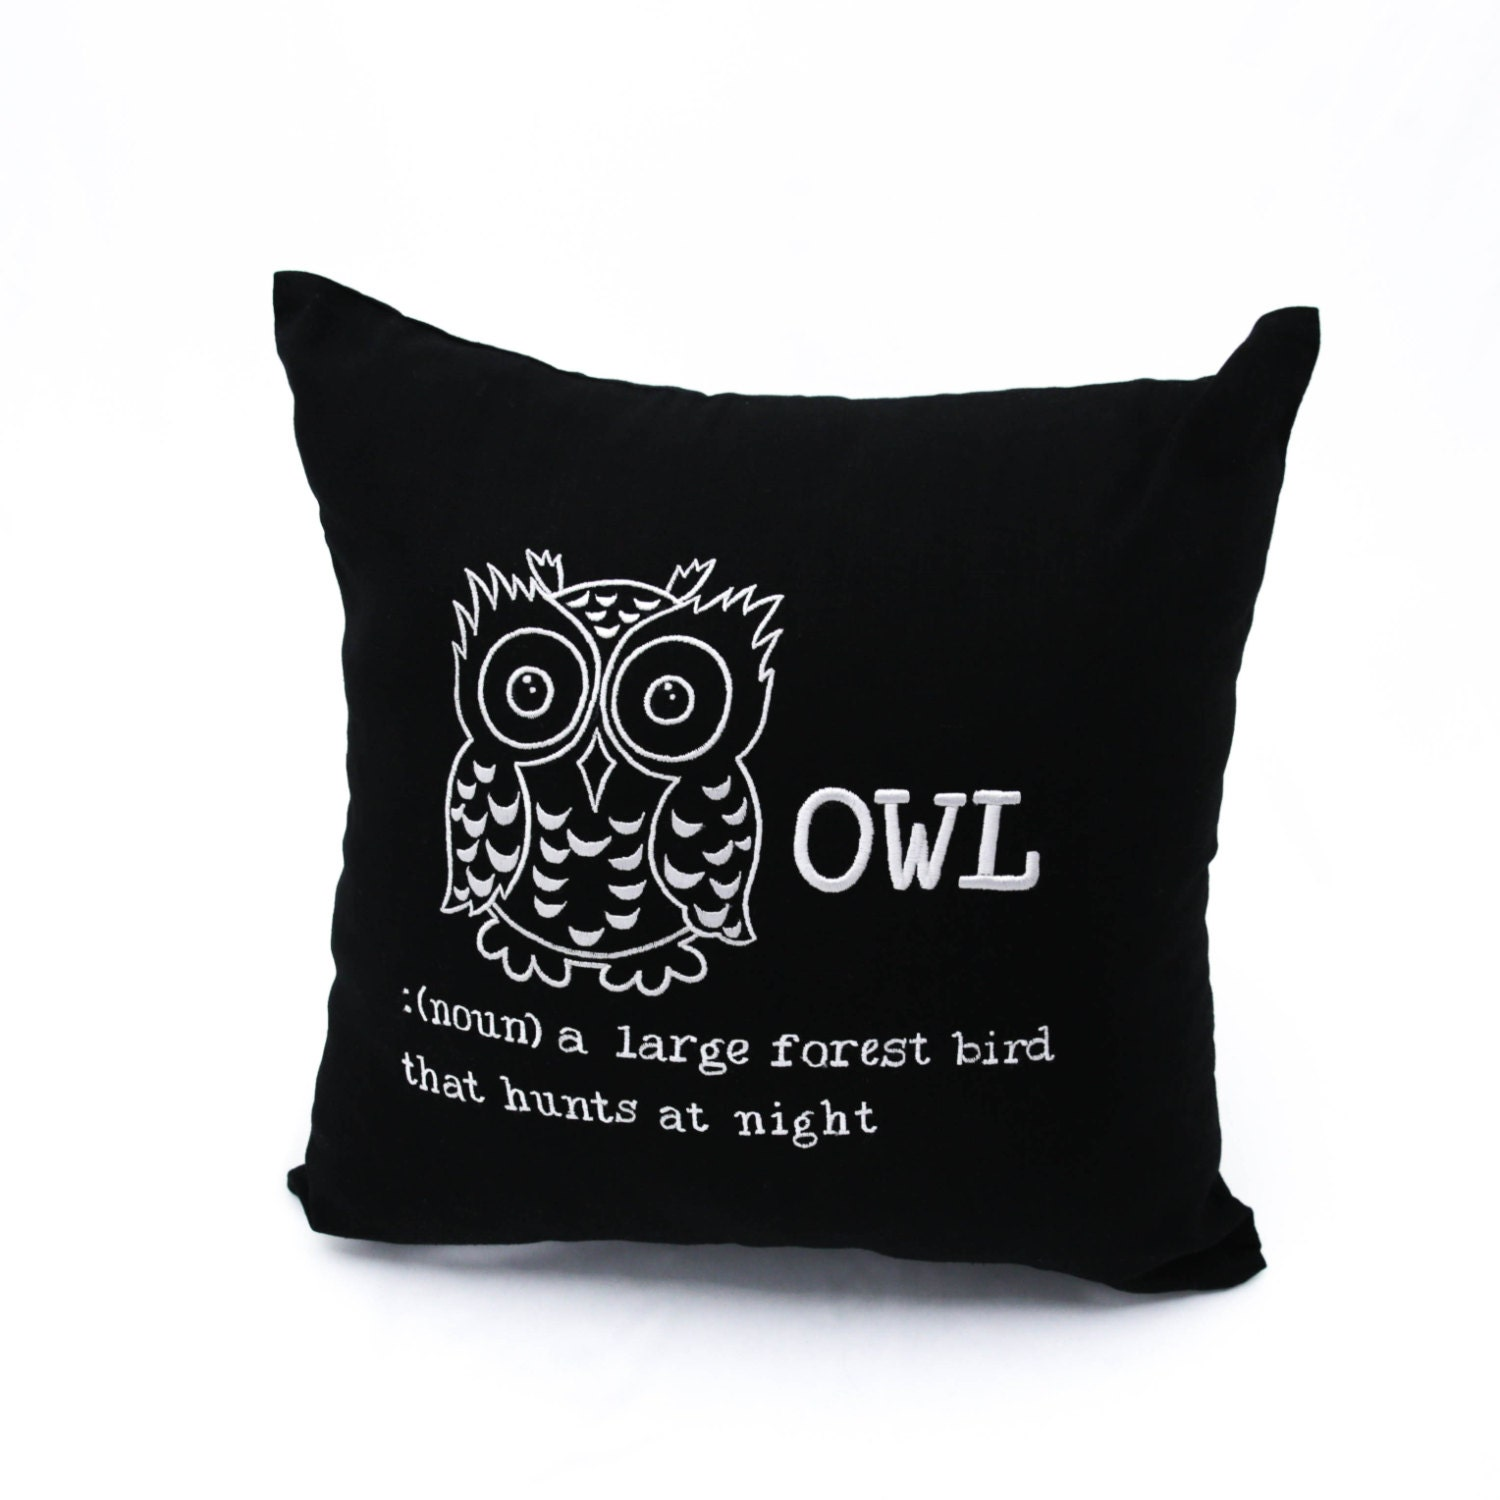 Owl Throw Pillow Etsy : OWL Throw Pillow Cover Black Linen Gray Owl Embroidery Bird